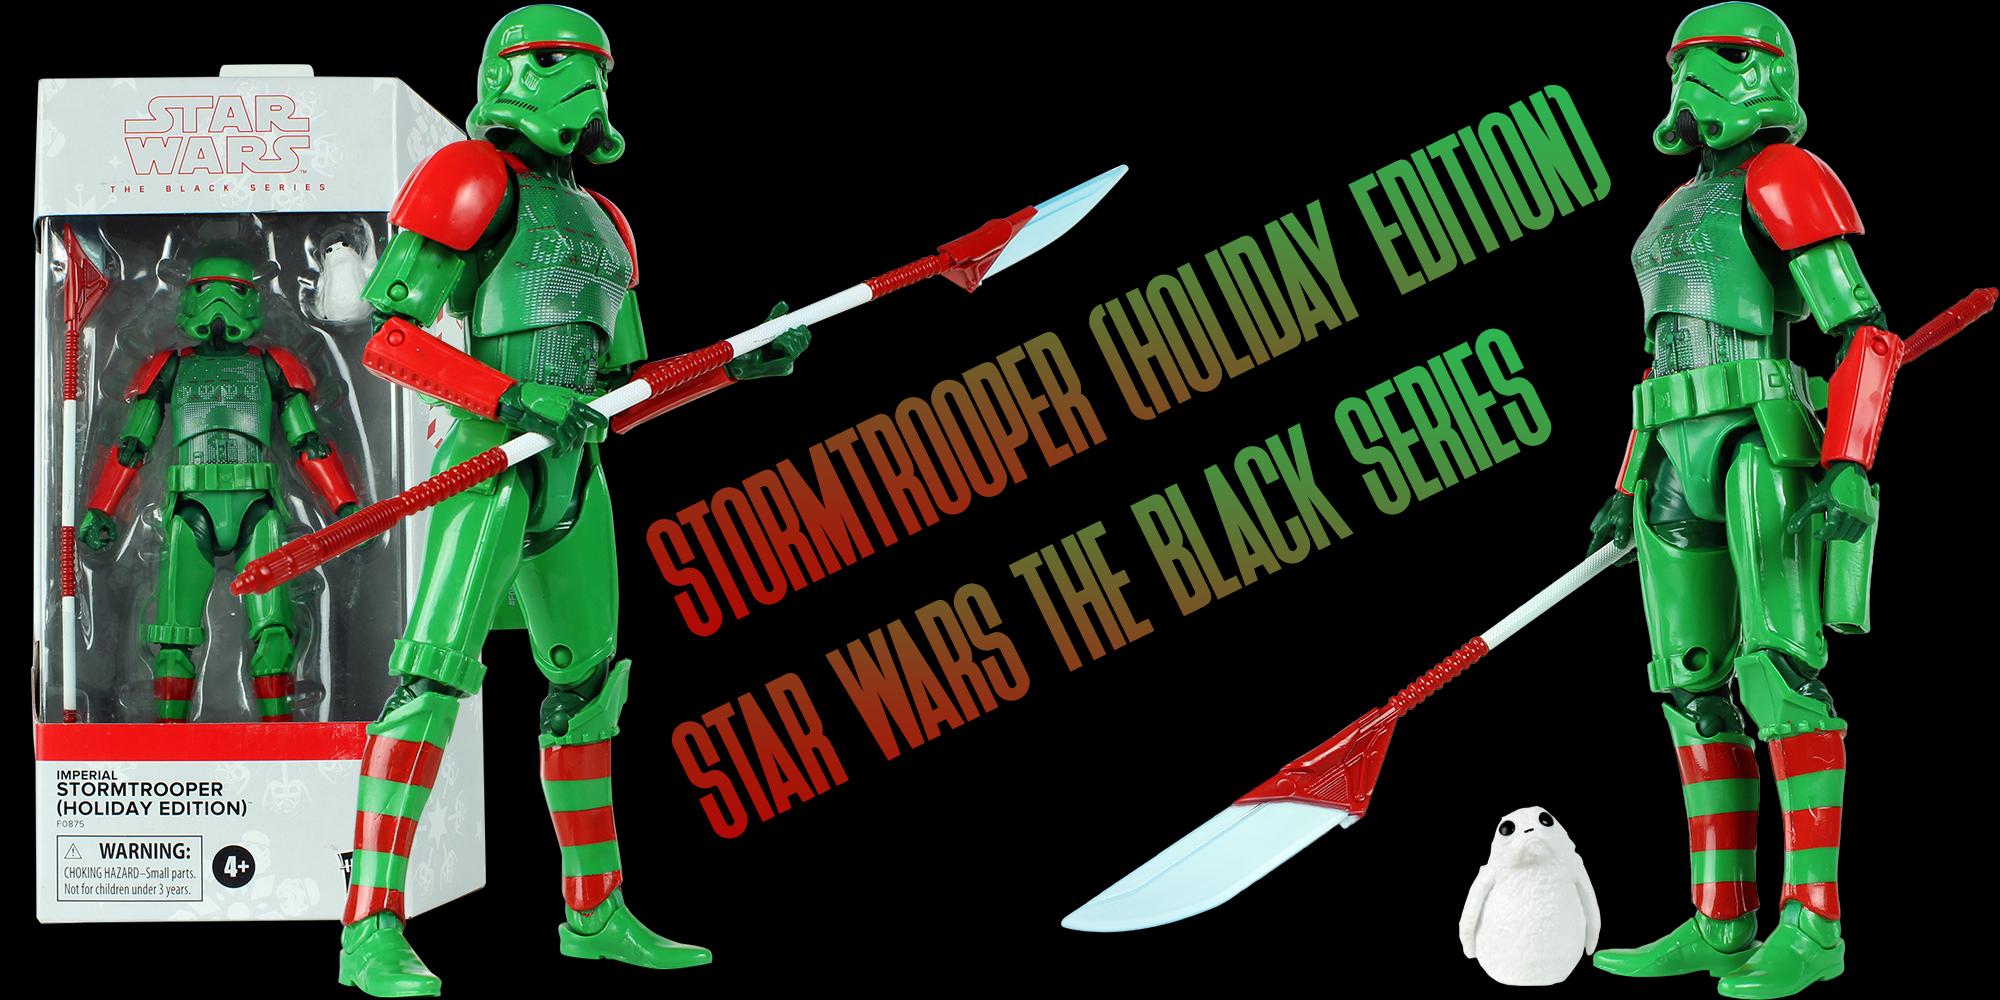 Black Series Stormtrooper Holiday Edition